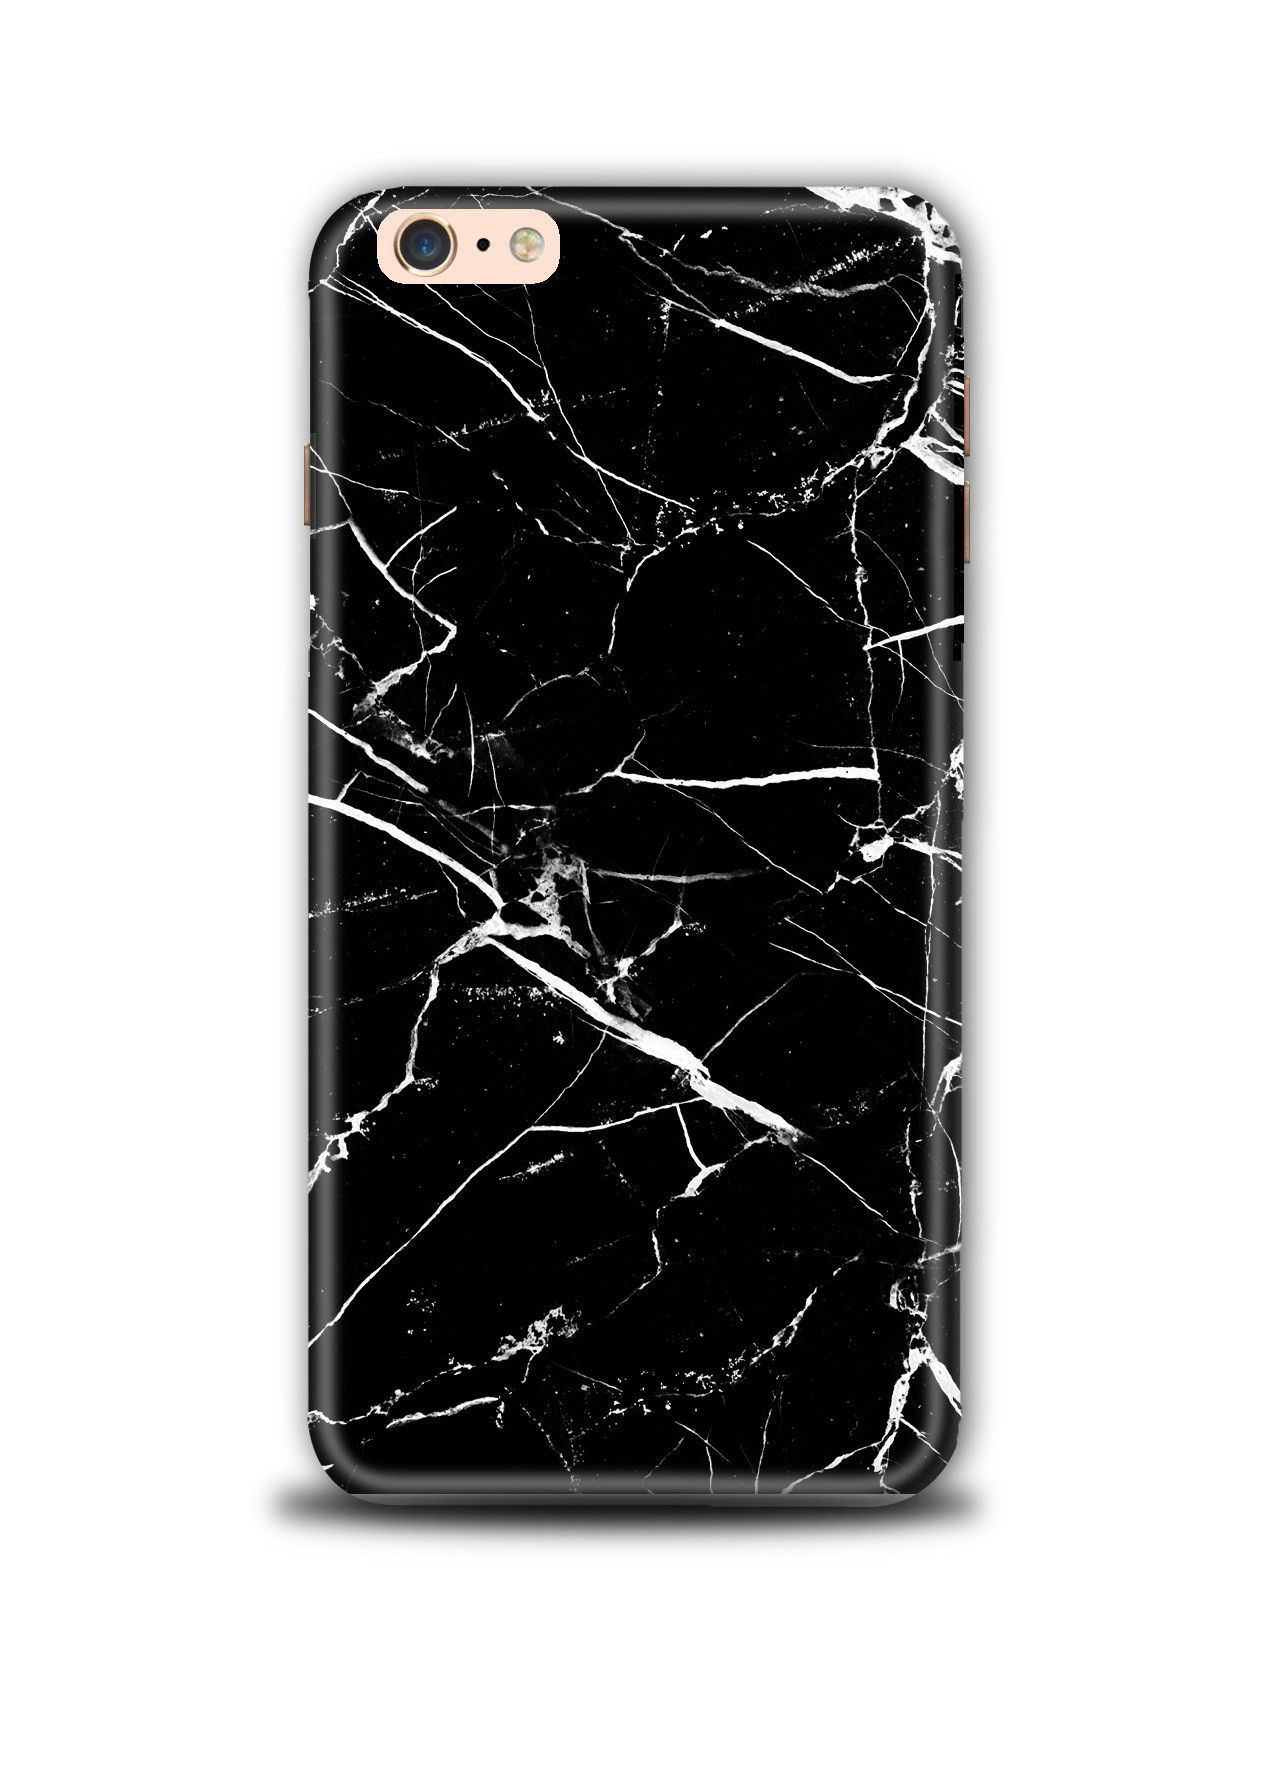 Black   White Marble iPhone 6 Plus 6s Plus Case - Printed Back Covers  Online at Low Prices  1a7b27572